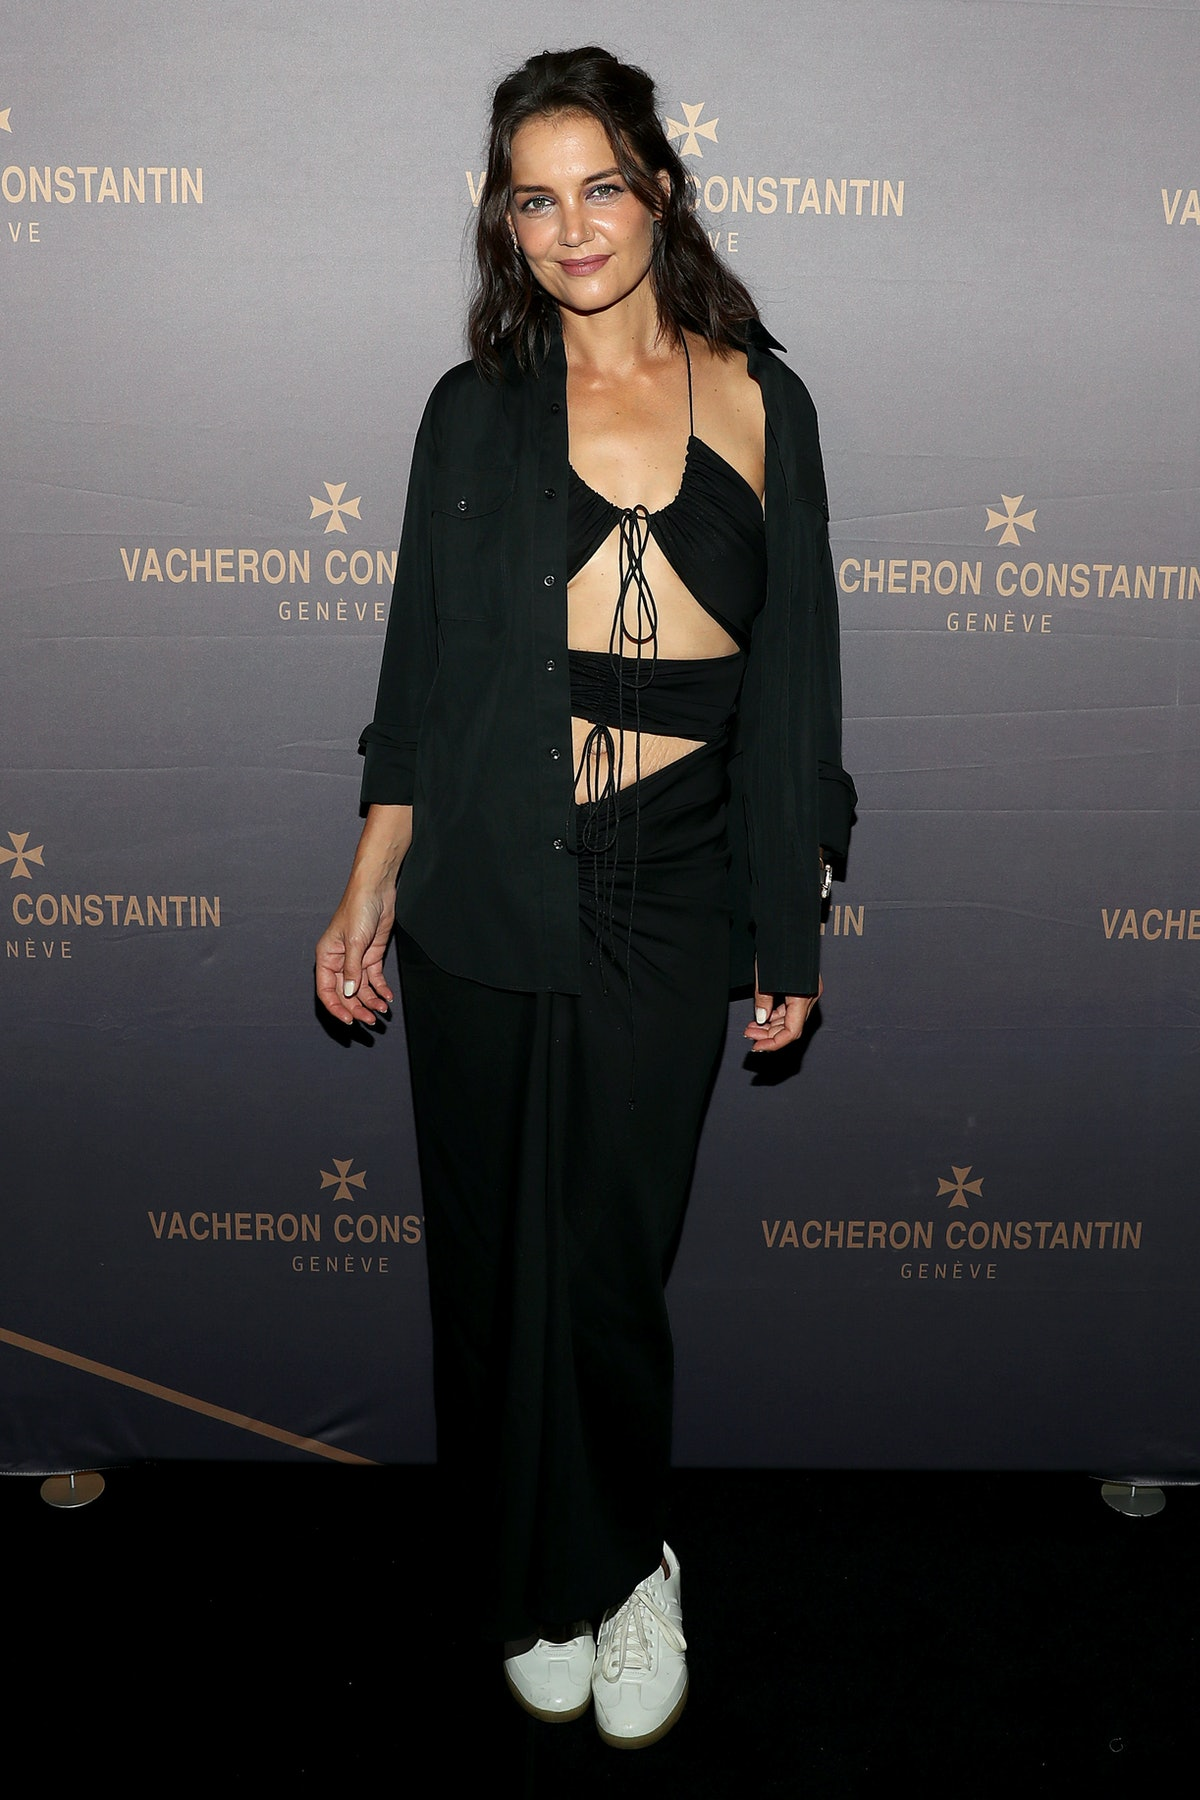 Katie Holmes attends the Vacheron Constantin Flagship Grand Opening in New York City in September 20...